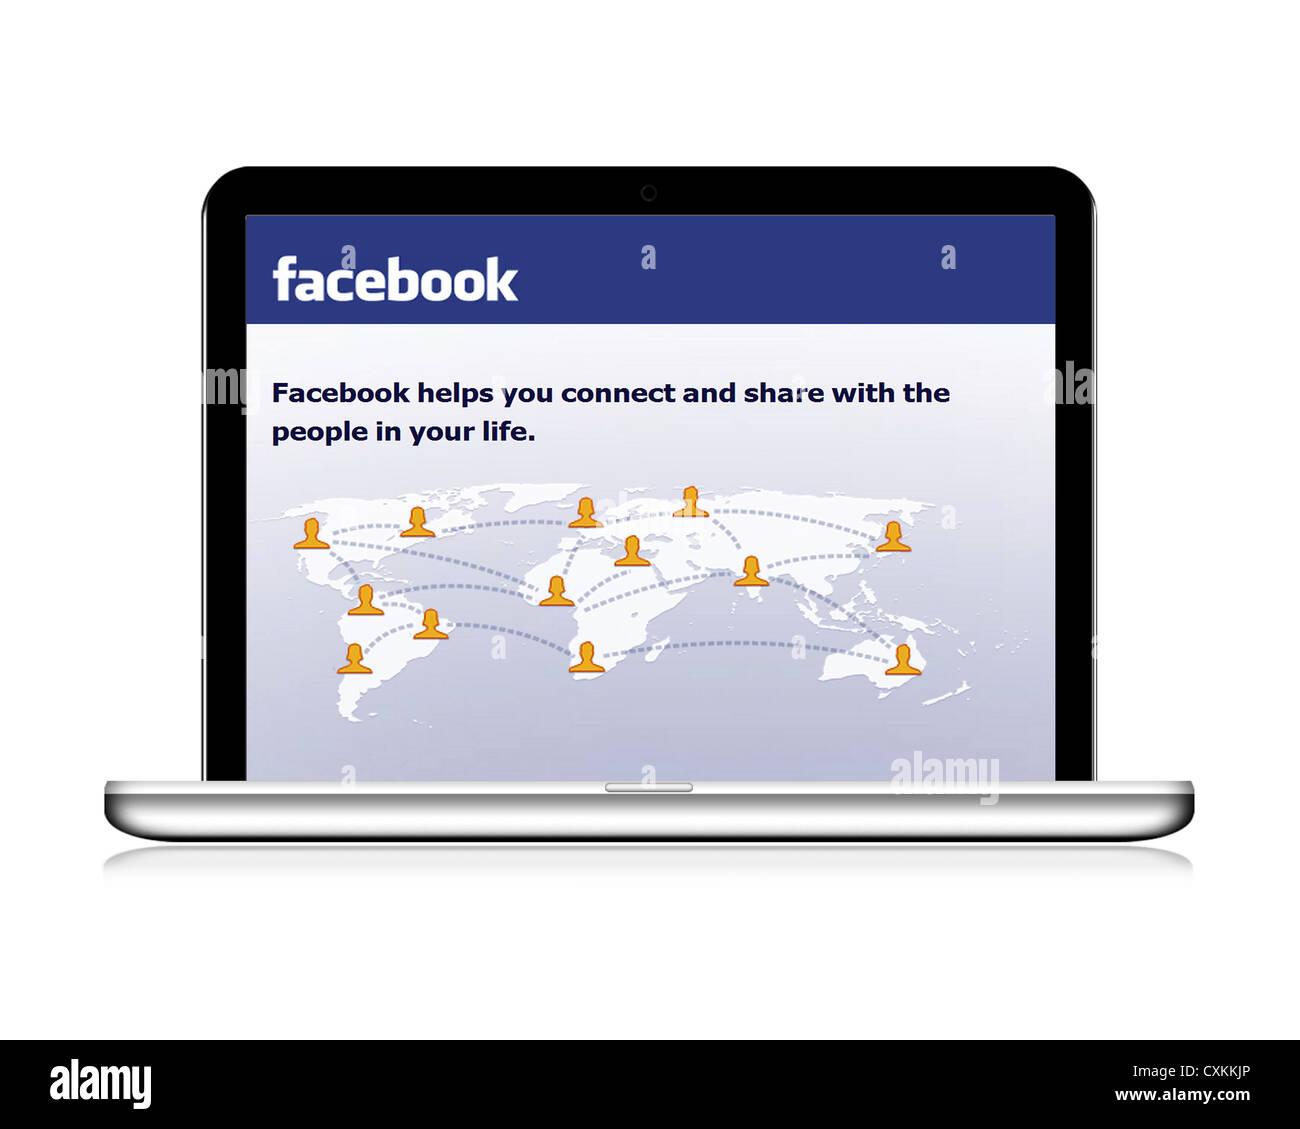 Facebook website on a laptop - Stock Image